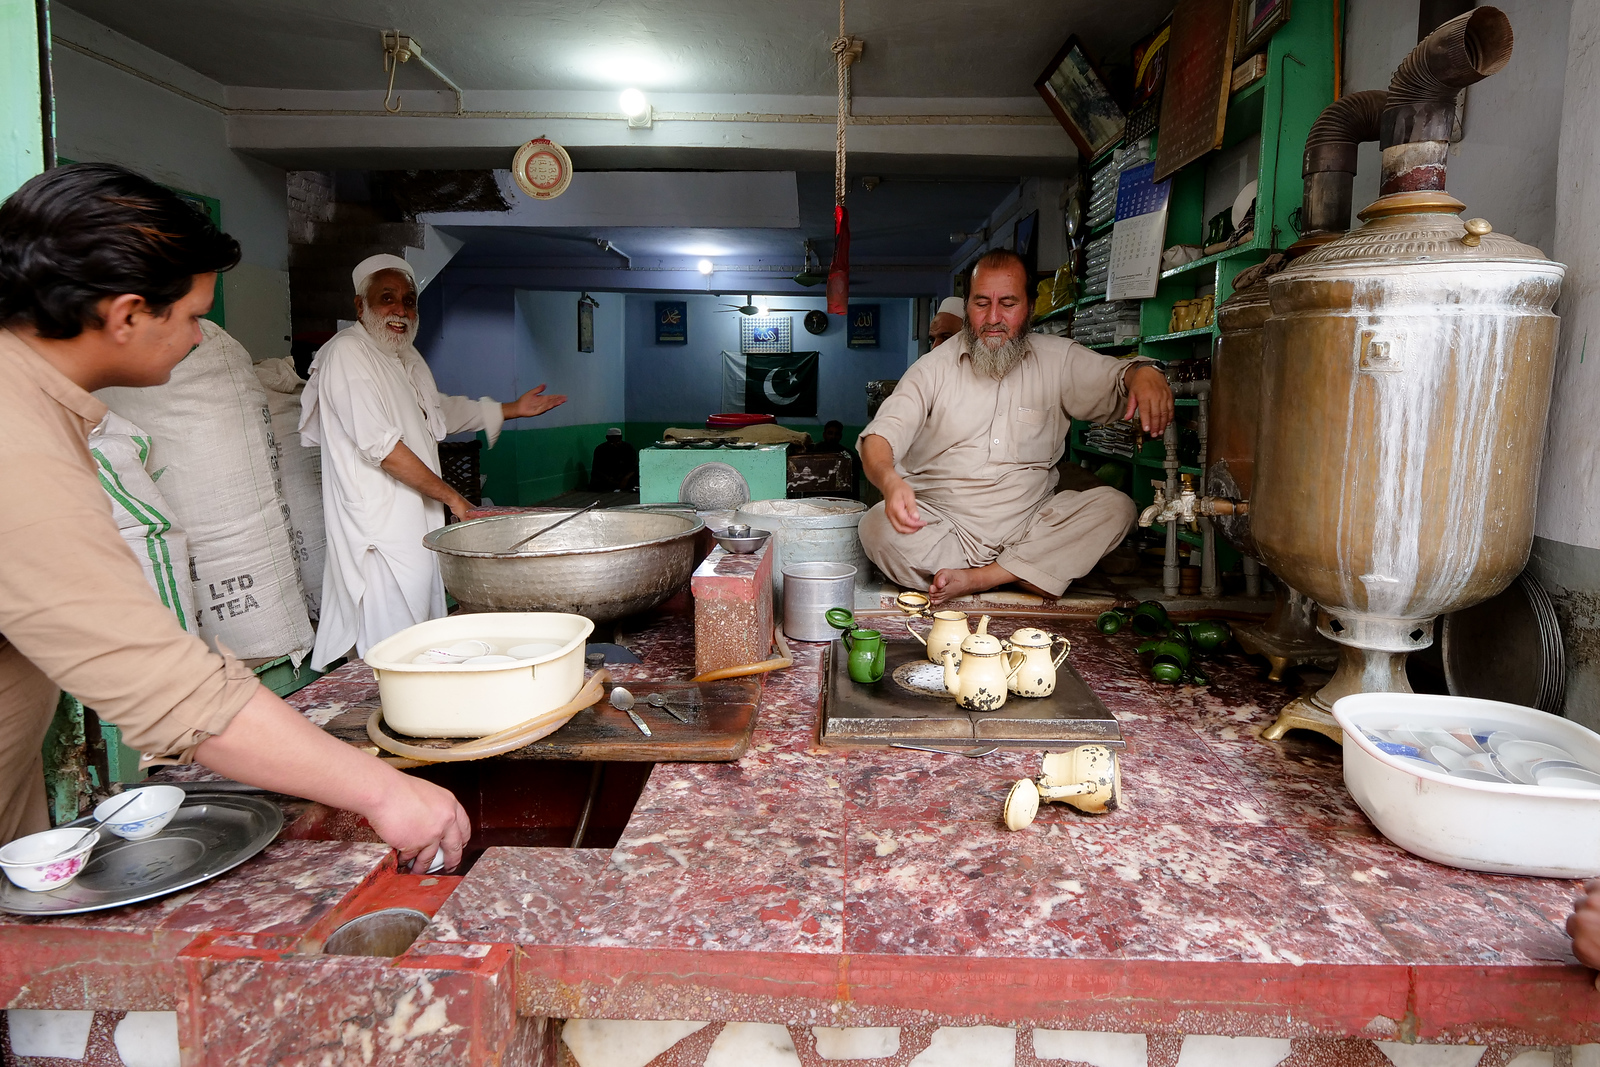 green tea in Peshawar, Pakistan